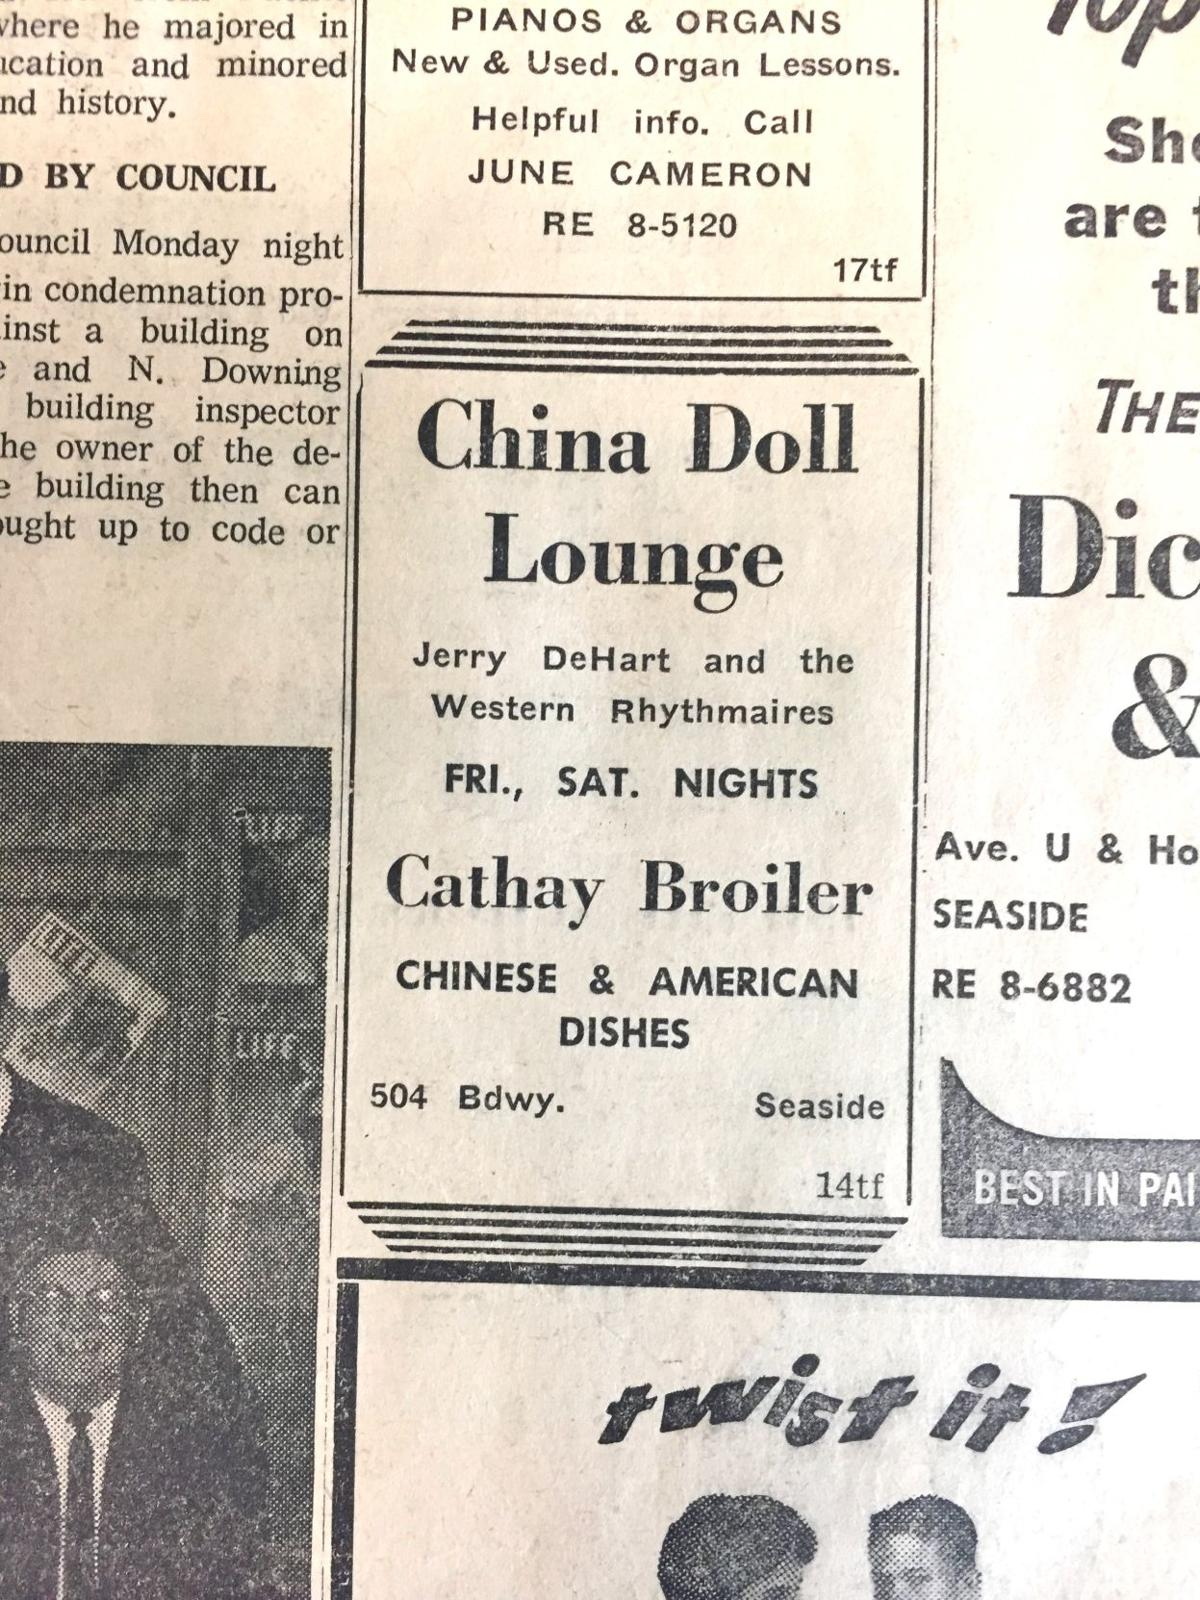 Live from the China Doll Lounge